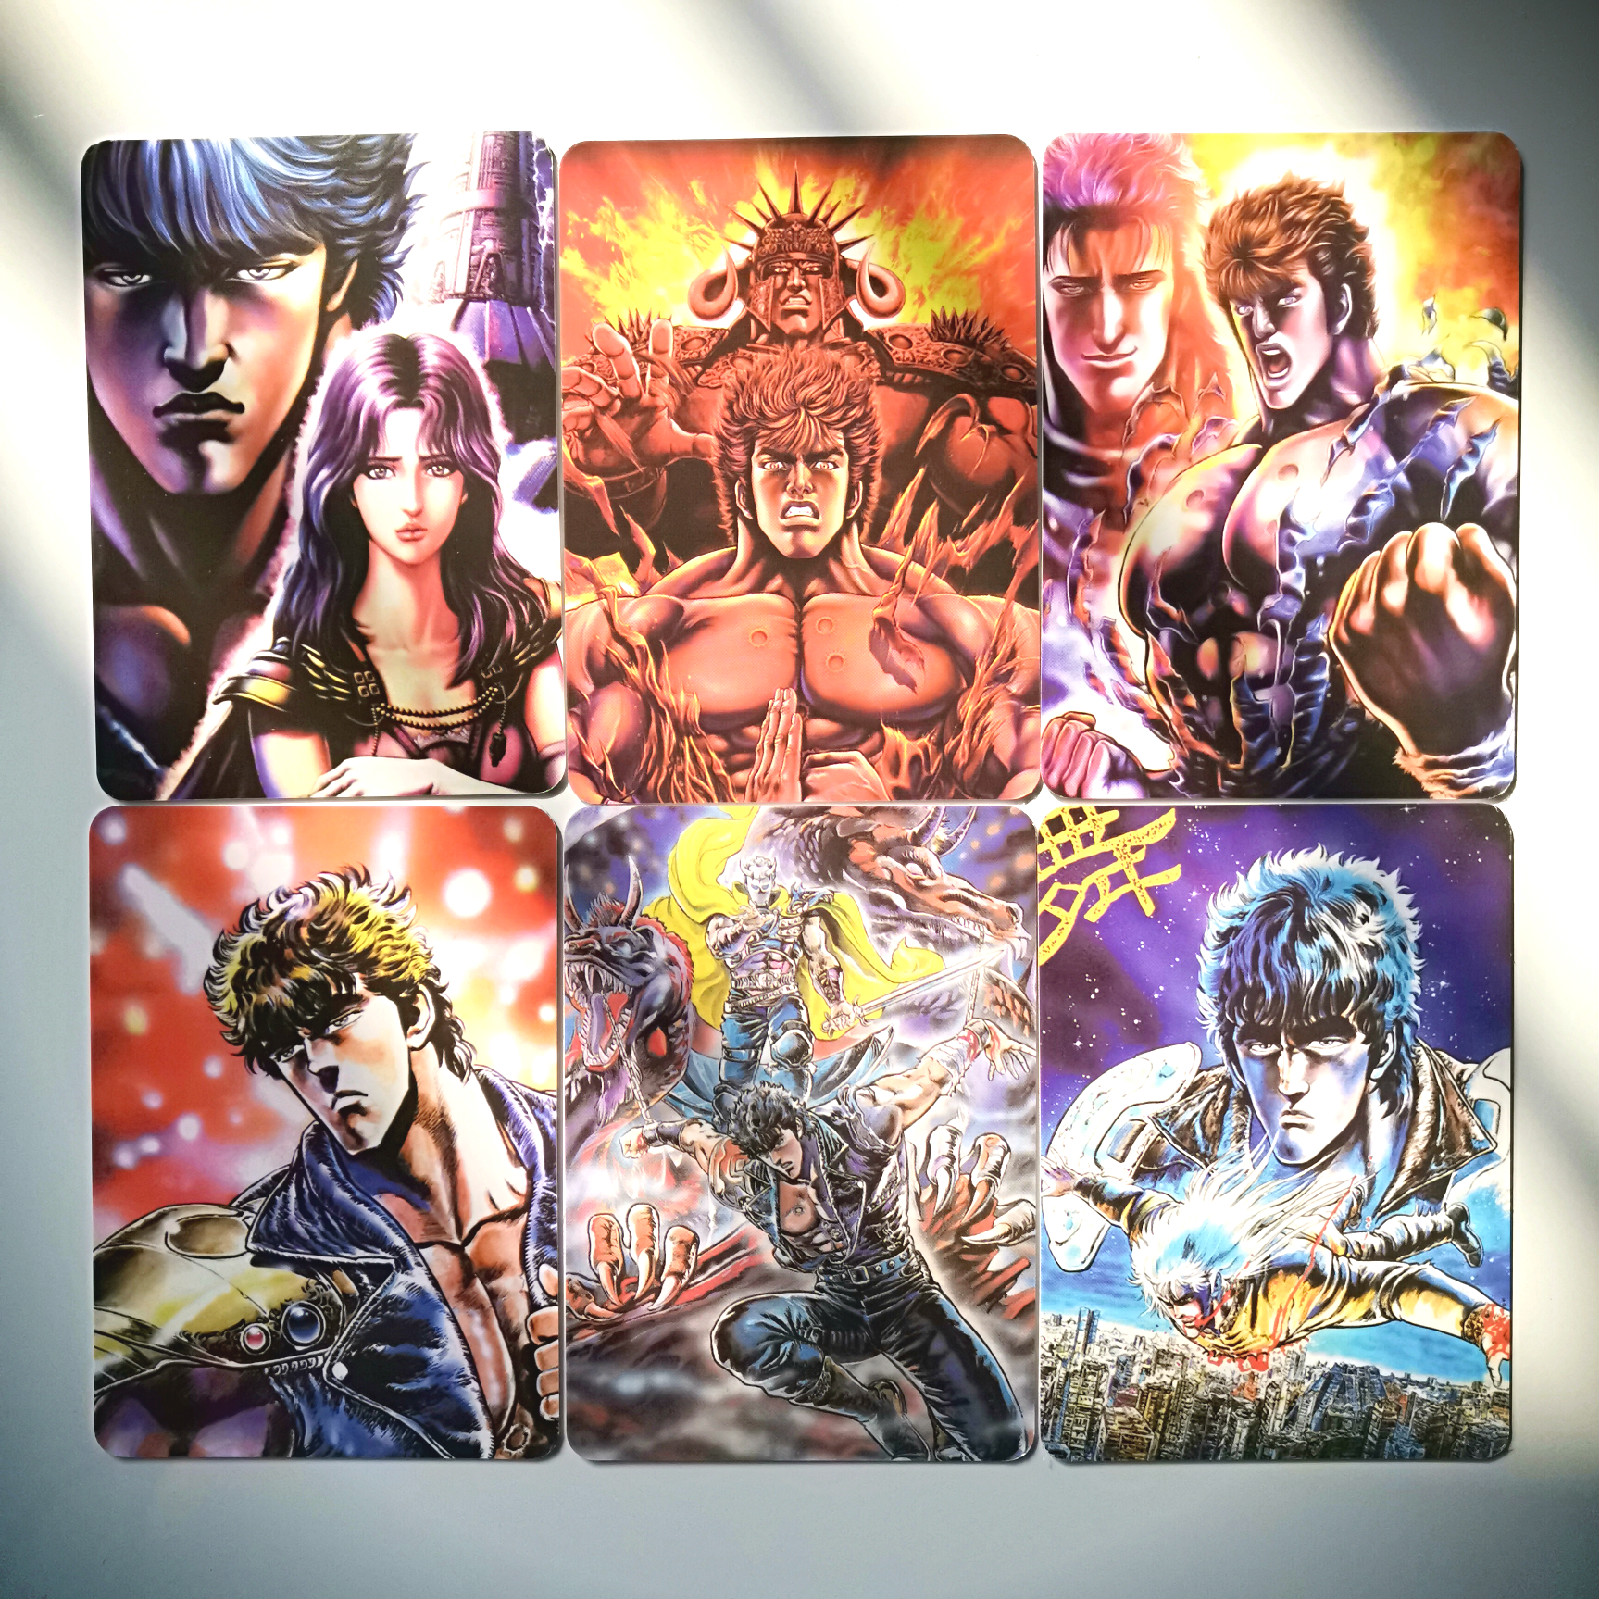 36pcs/set Fist Of The North Star Toys Hobbies Hobby Collectibles Game Collection Anime Cards